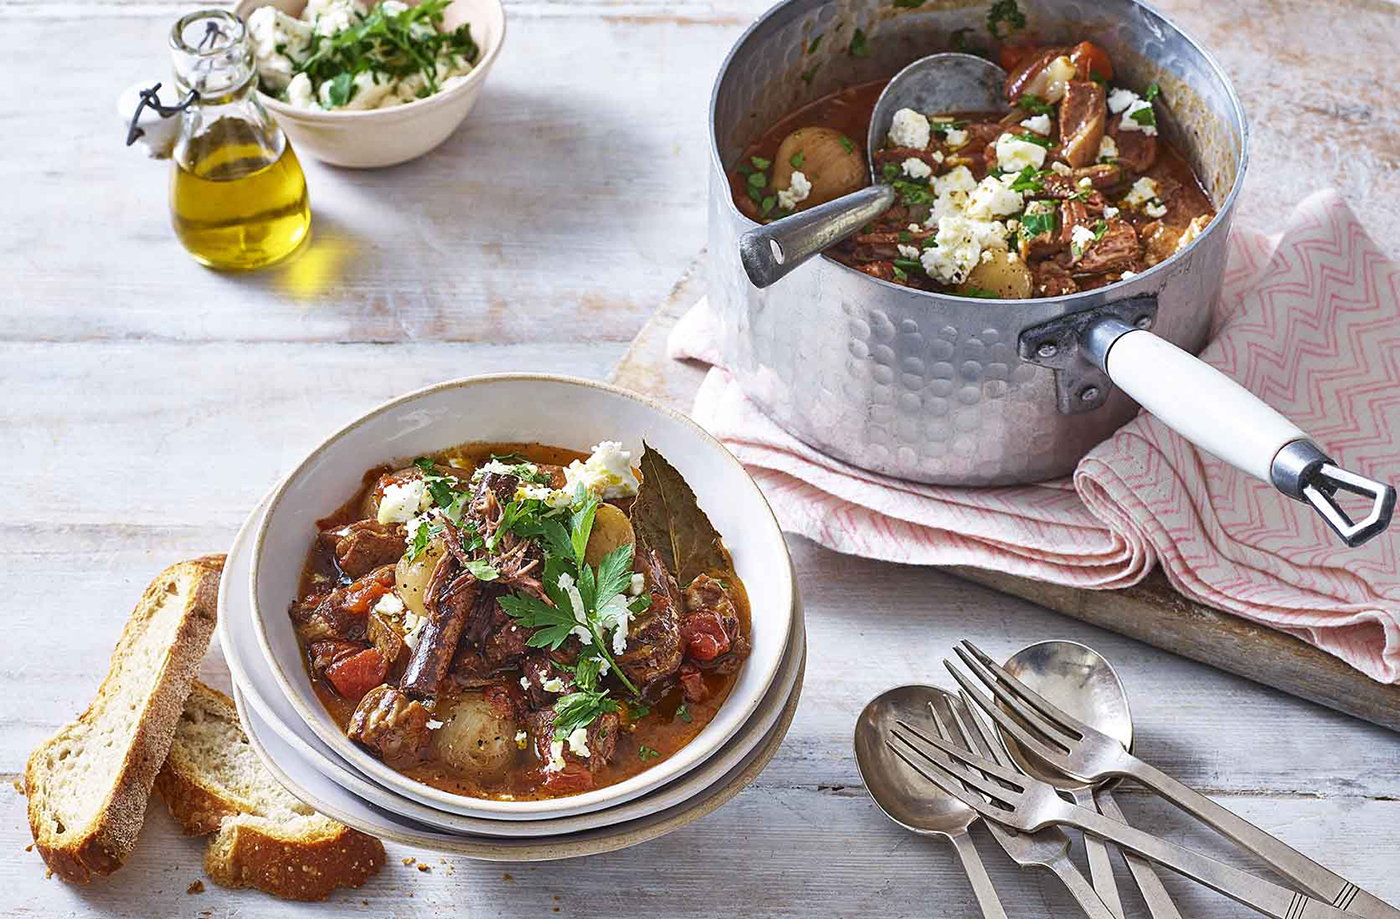 Lamb stifado recipe